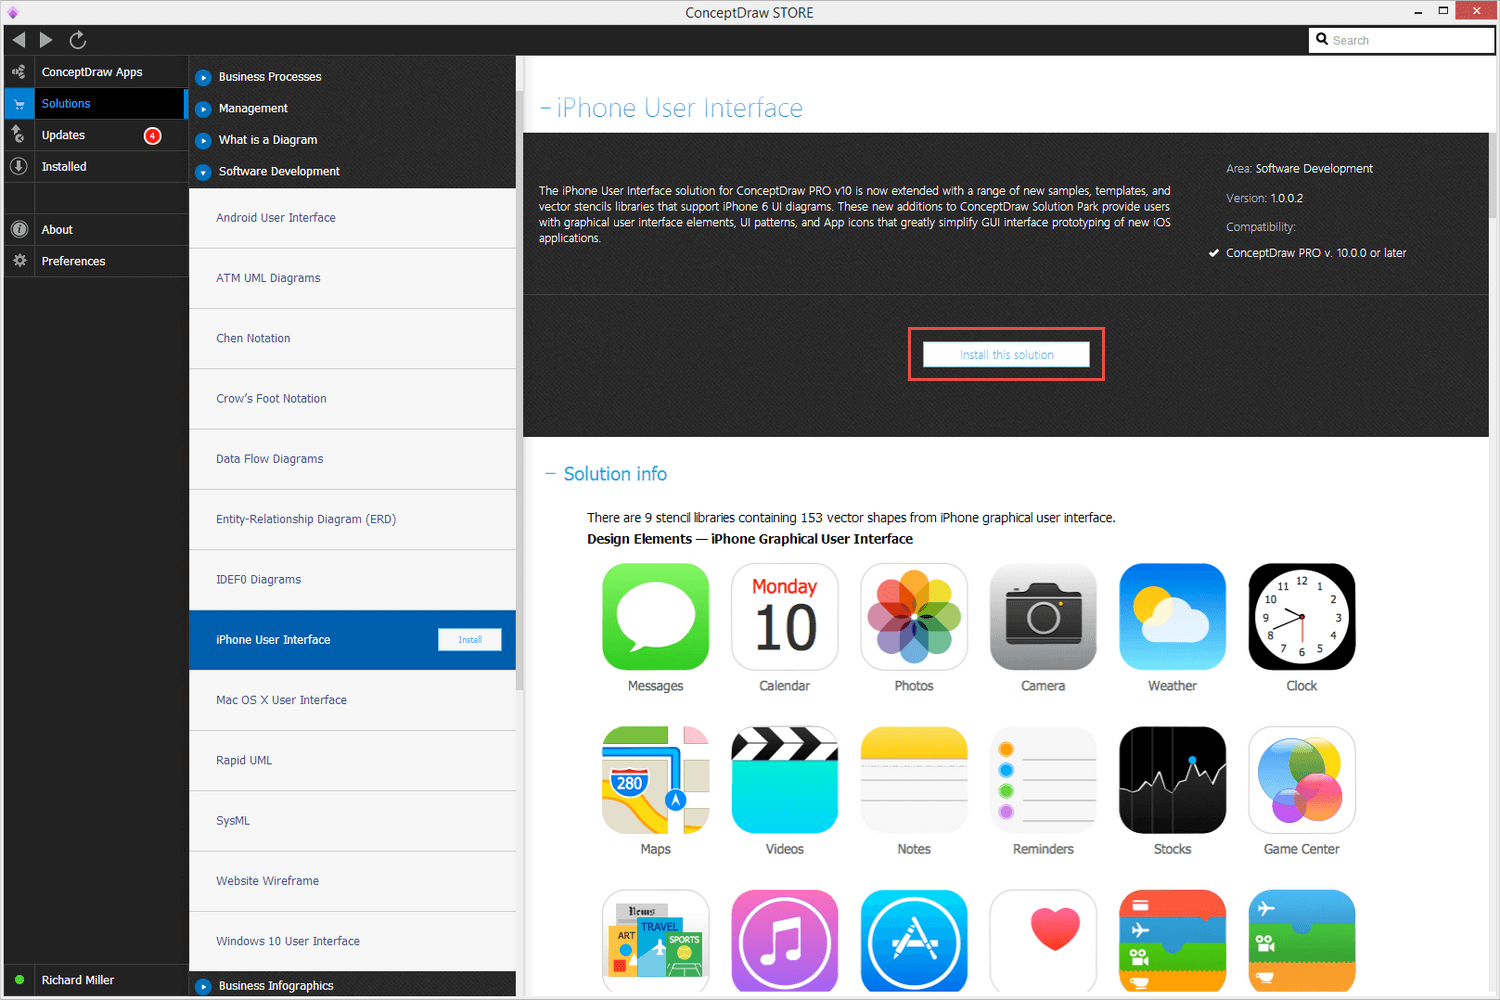 iPhone User Interface Solution - Install